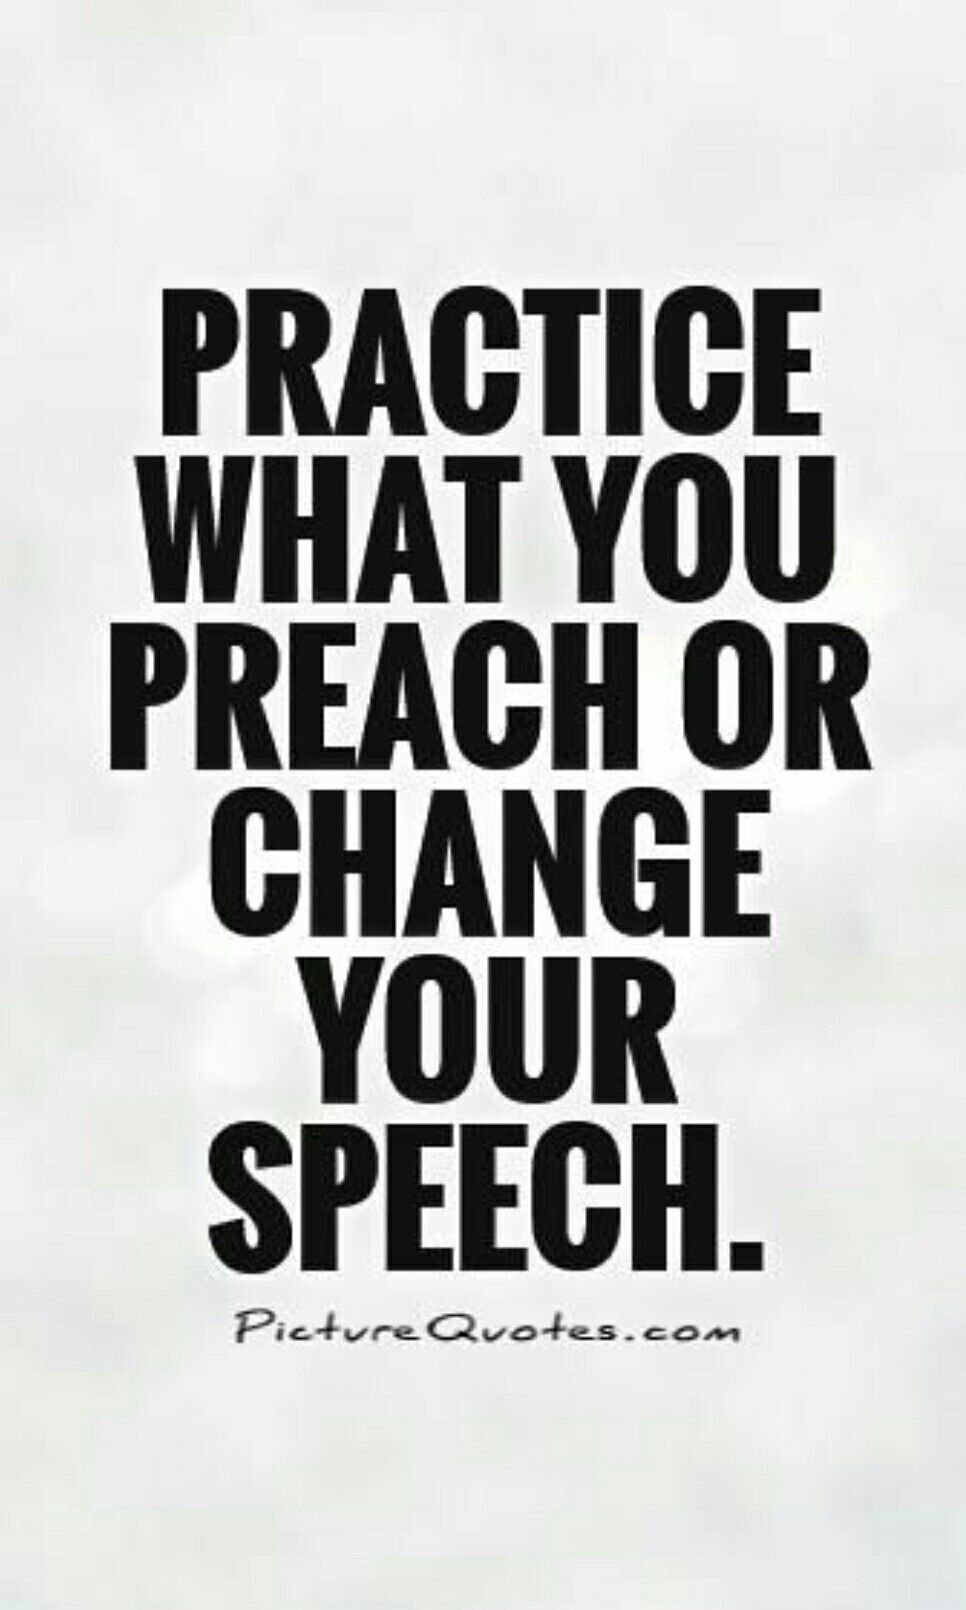 Practice What You Preach Or Change Your Speech Whats In Your Head